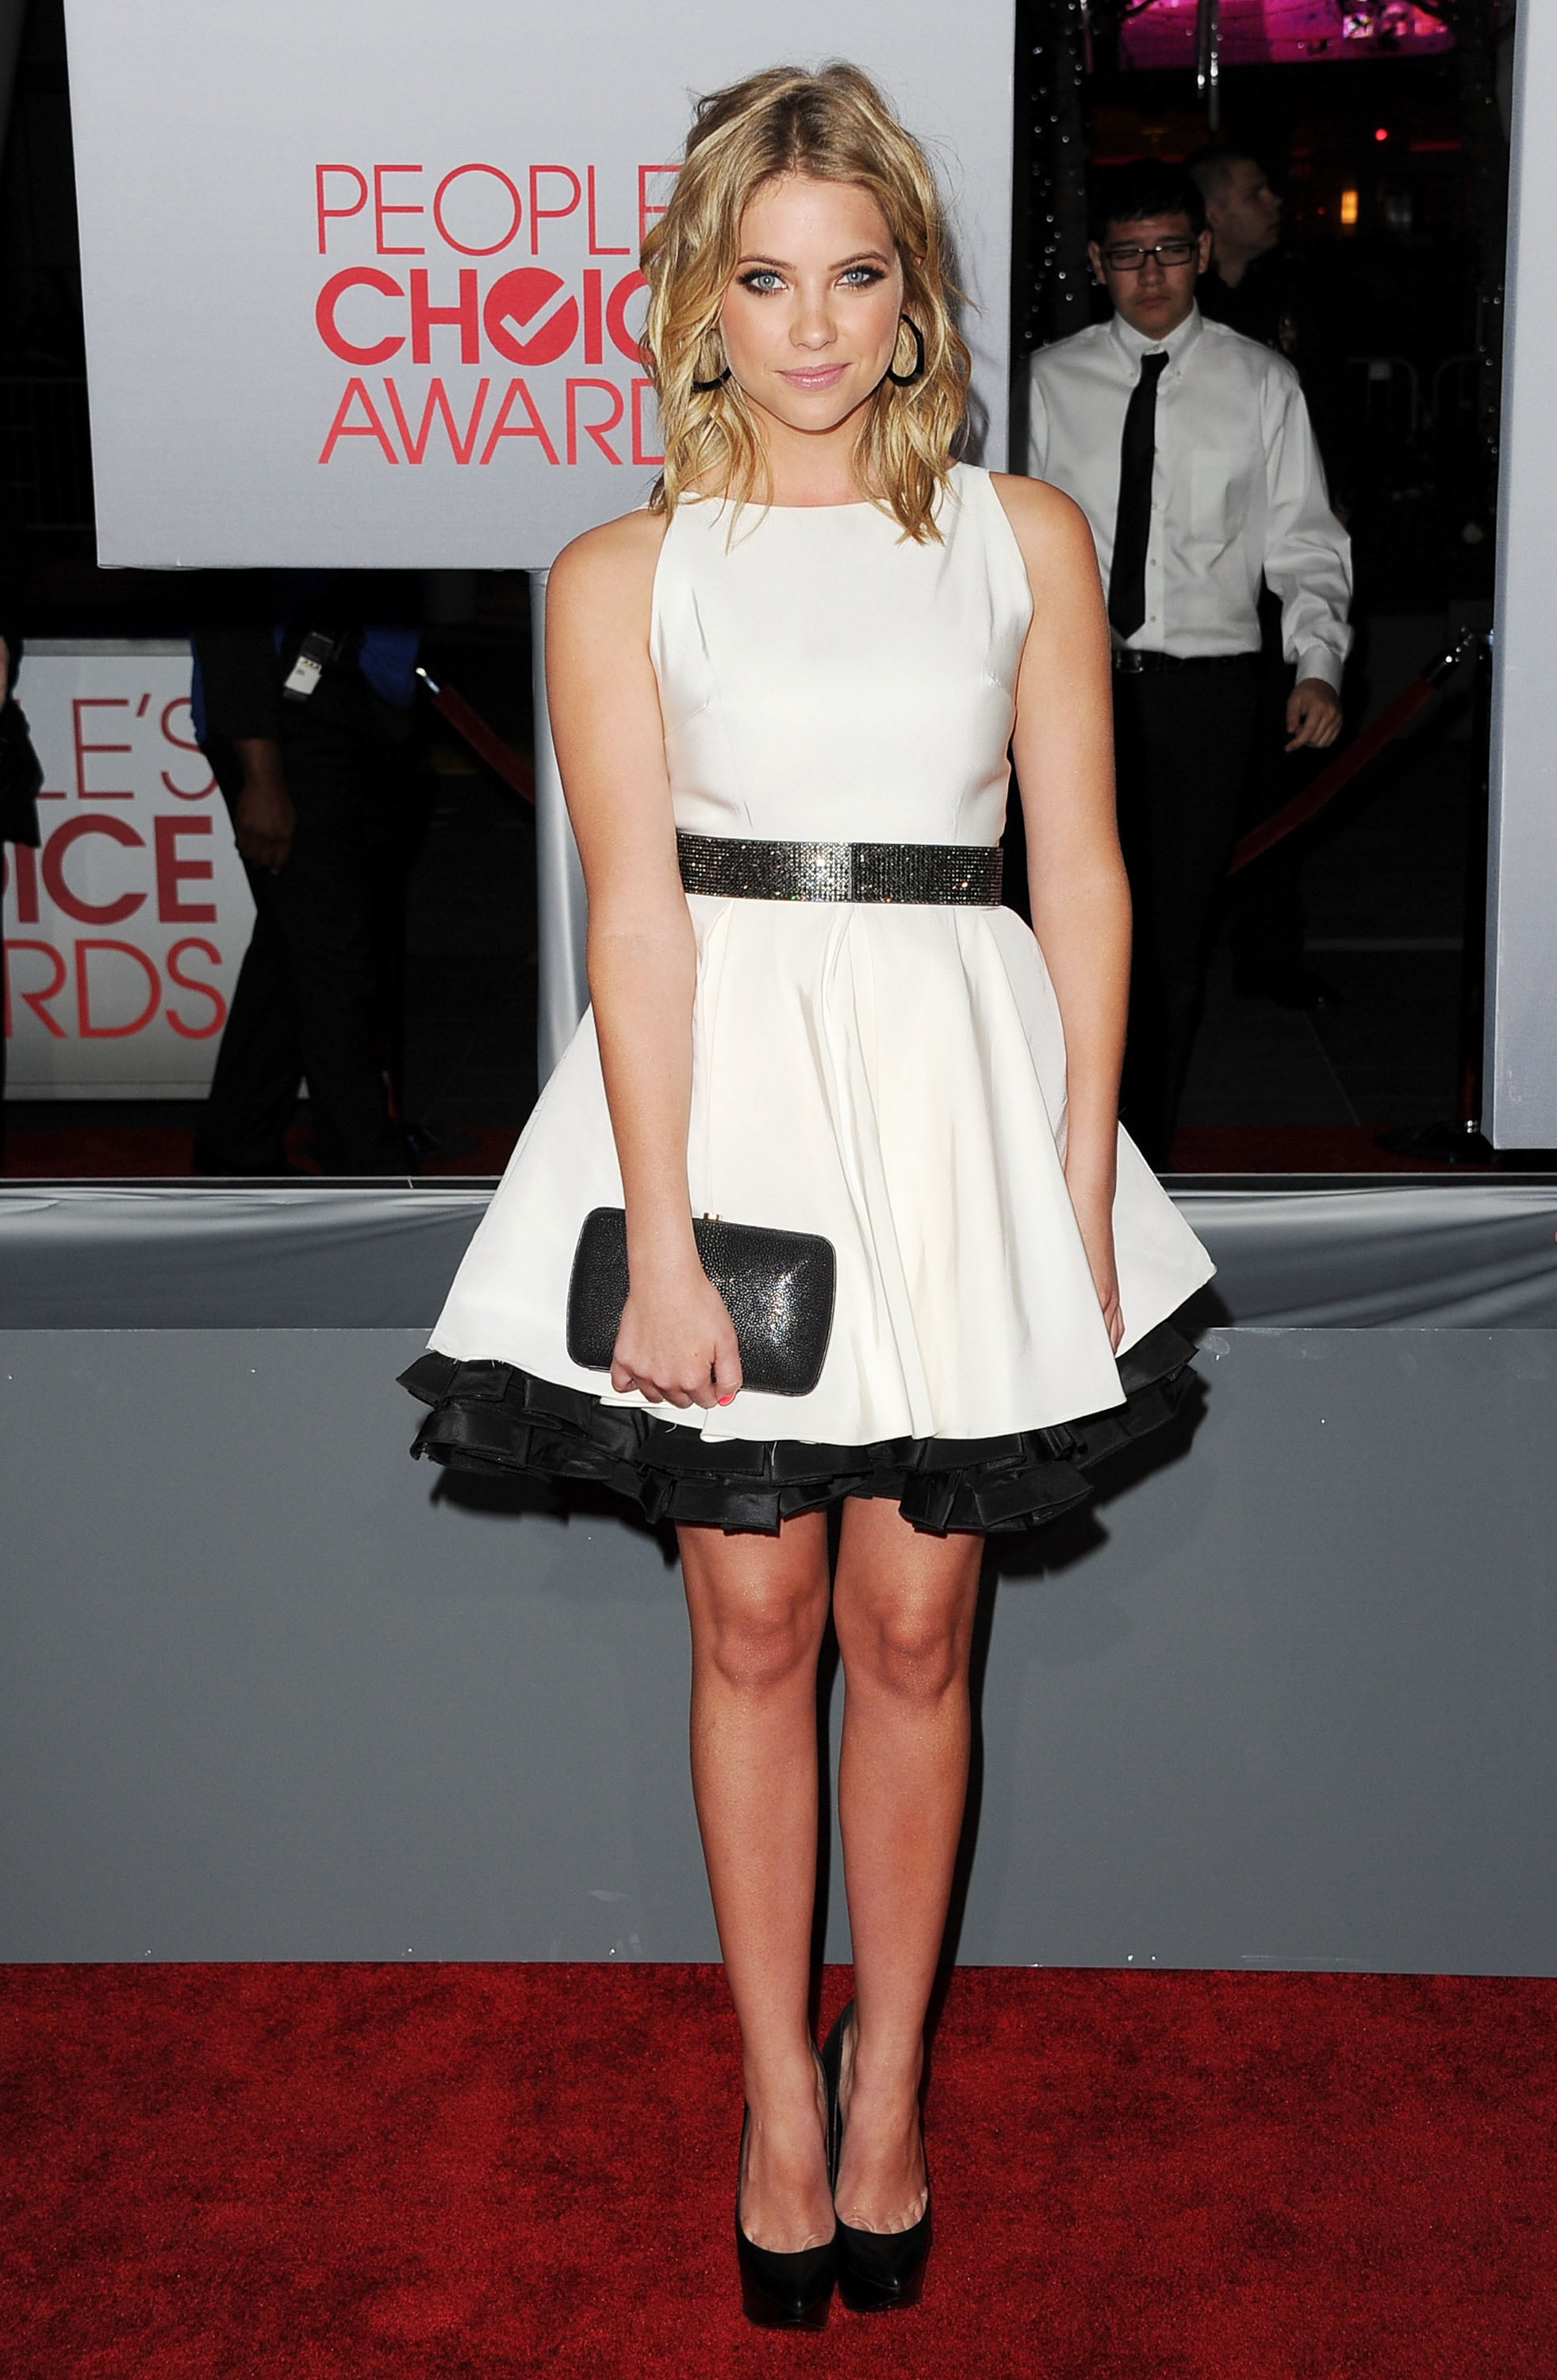 Ashley Benson was in black and white.